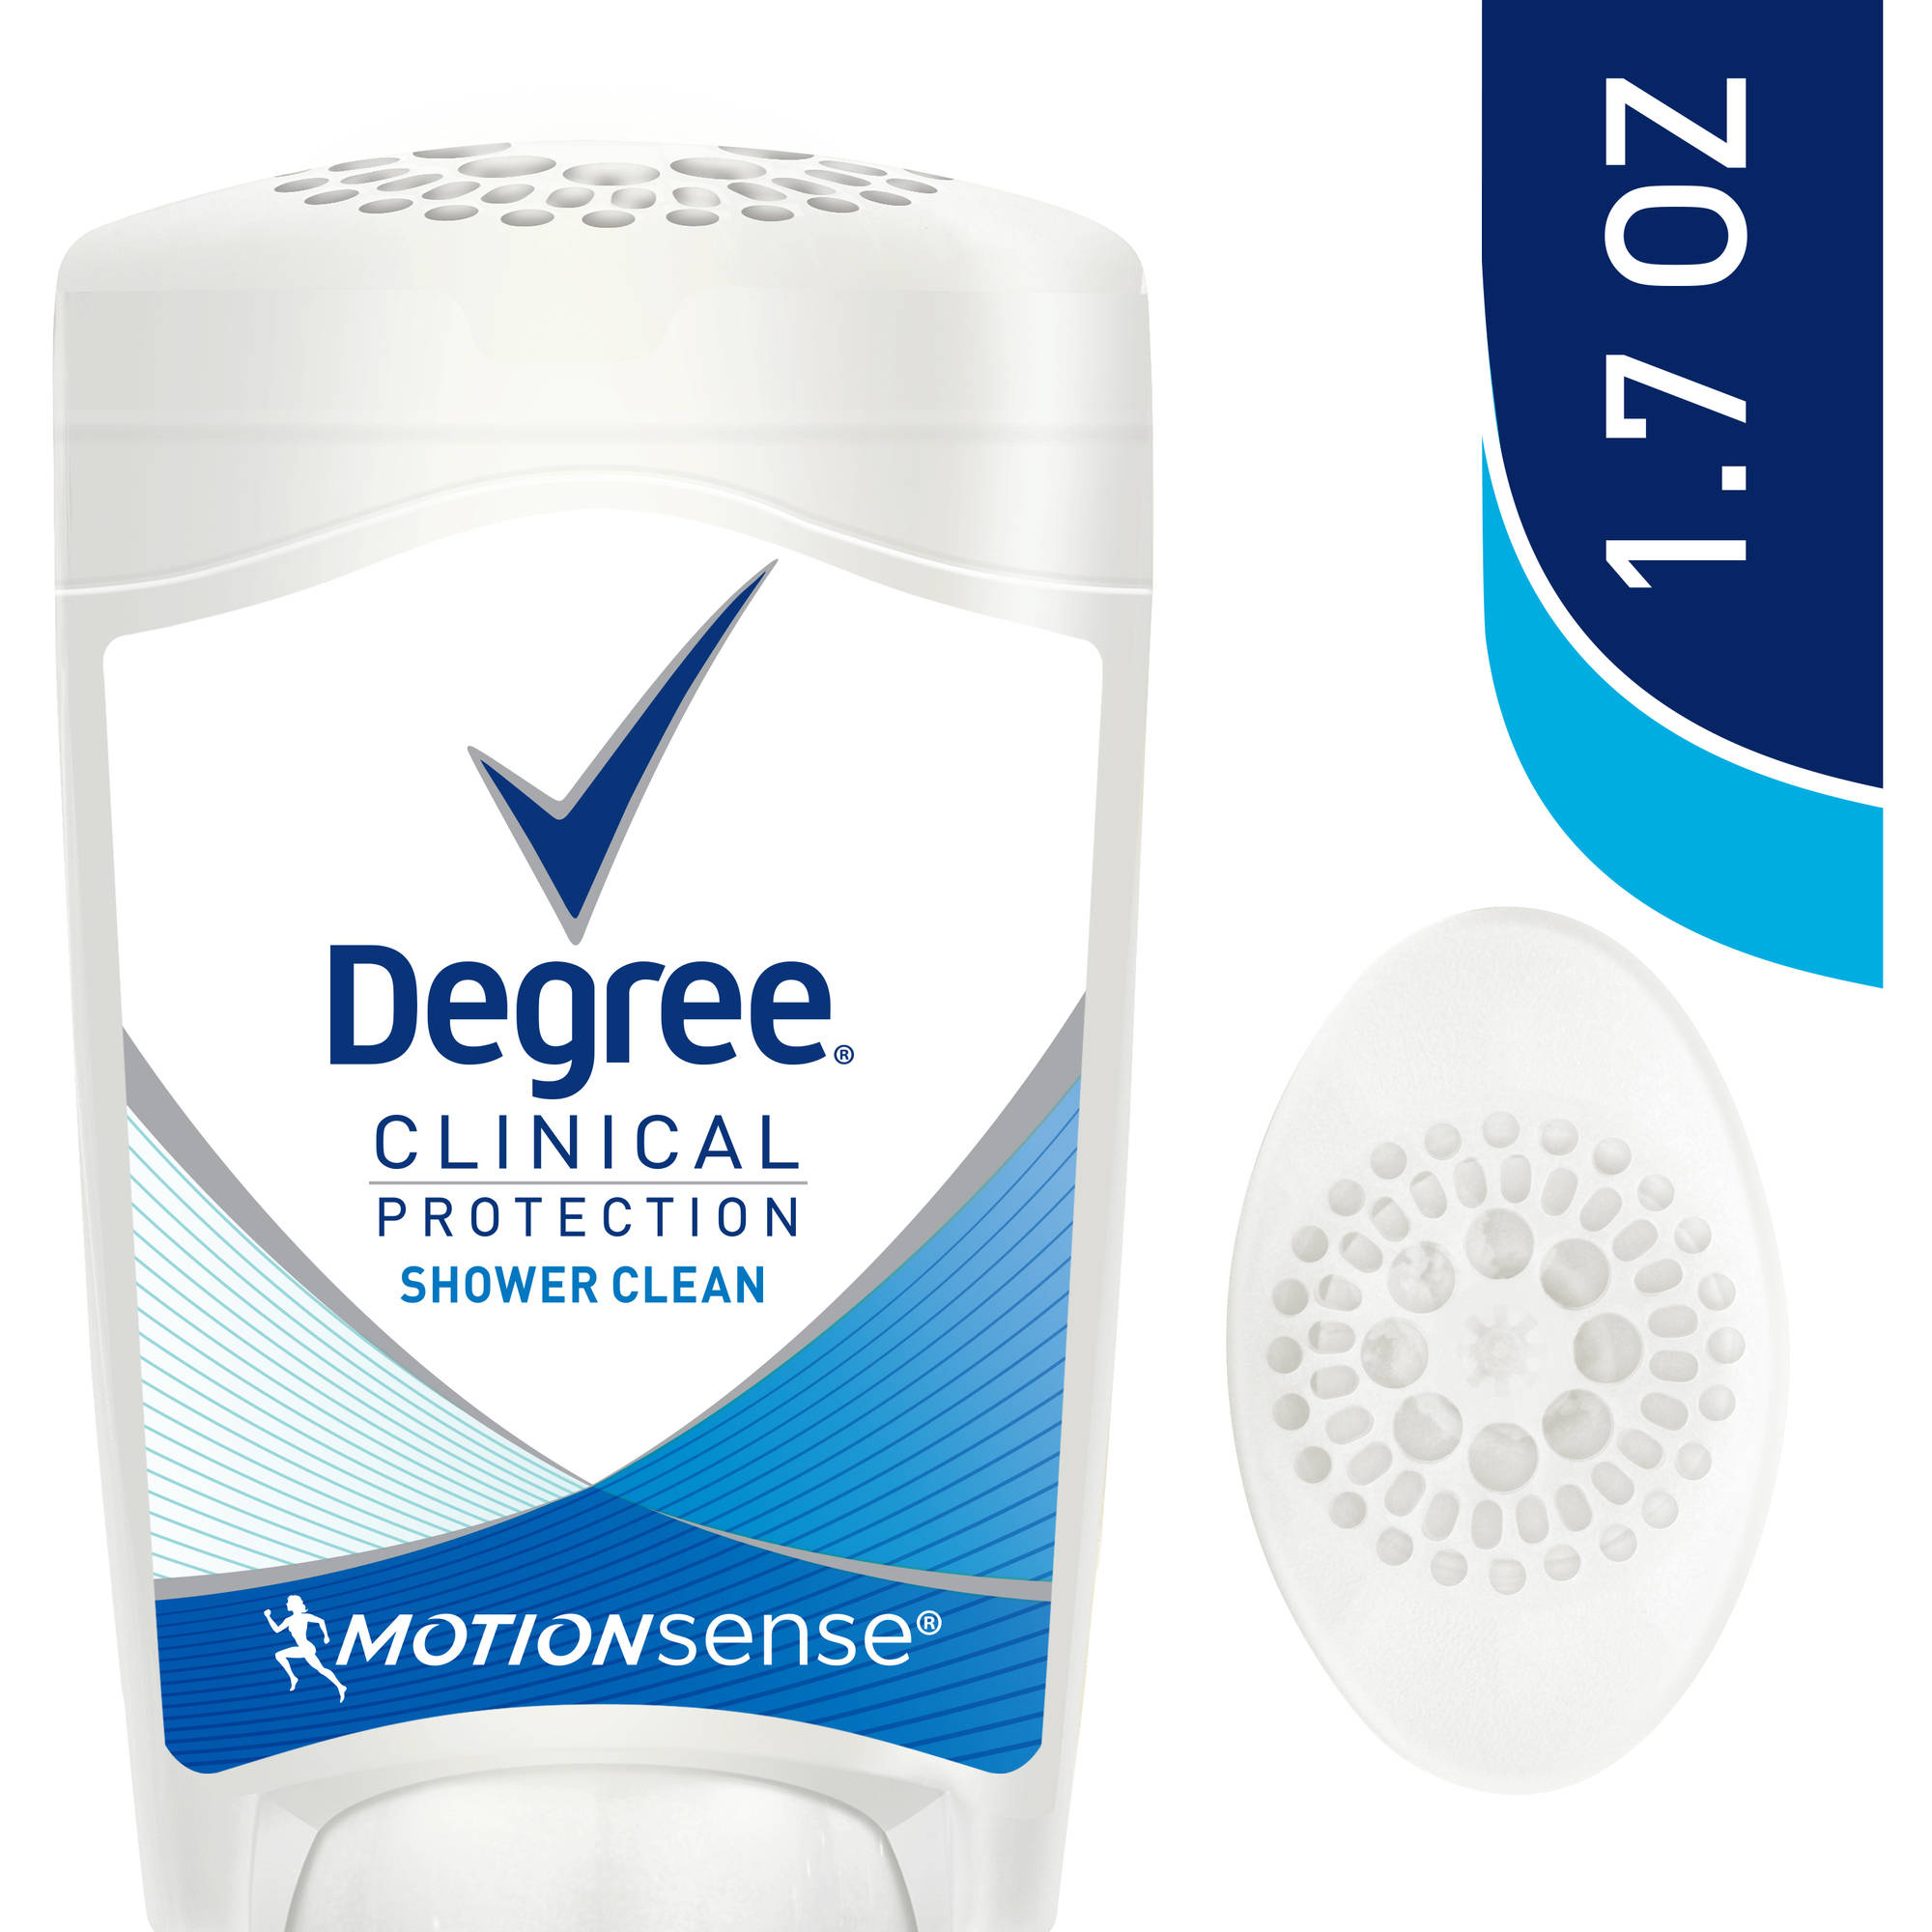 Degree Clinical Protection Shower Clean Antiperspirant Deodorant, 1.7 oz